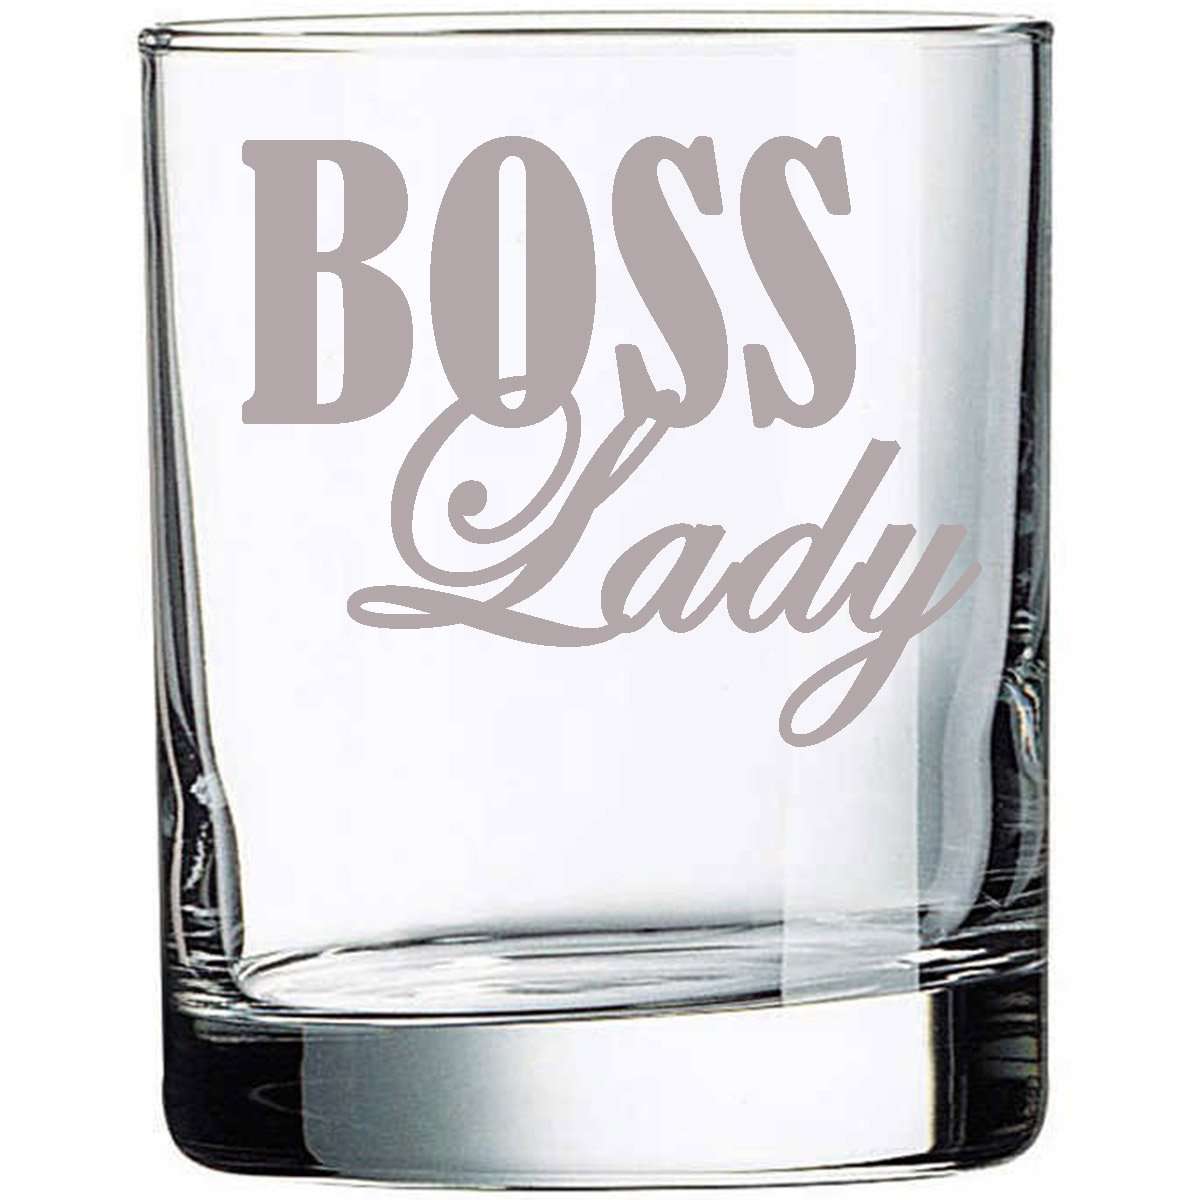 G070 Boss Lady Rocks Glass Highball Glass, Wife, Wifey, Girlfriend, Grandma, Grandmother, Gift present Mother's day. 10 oz Glass